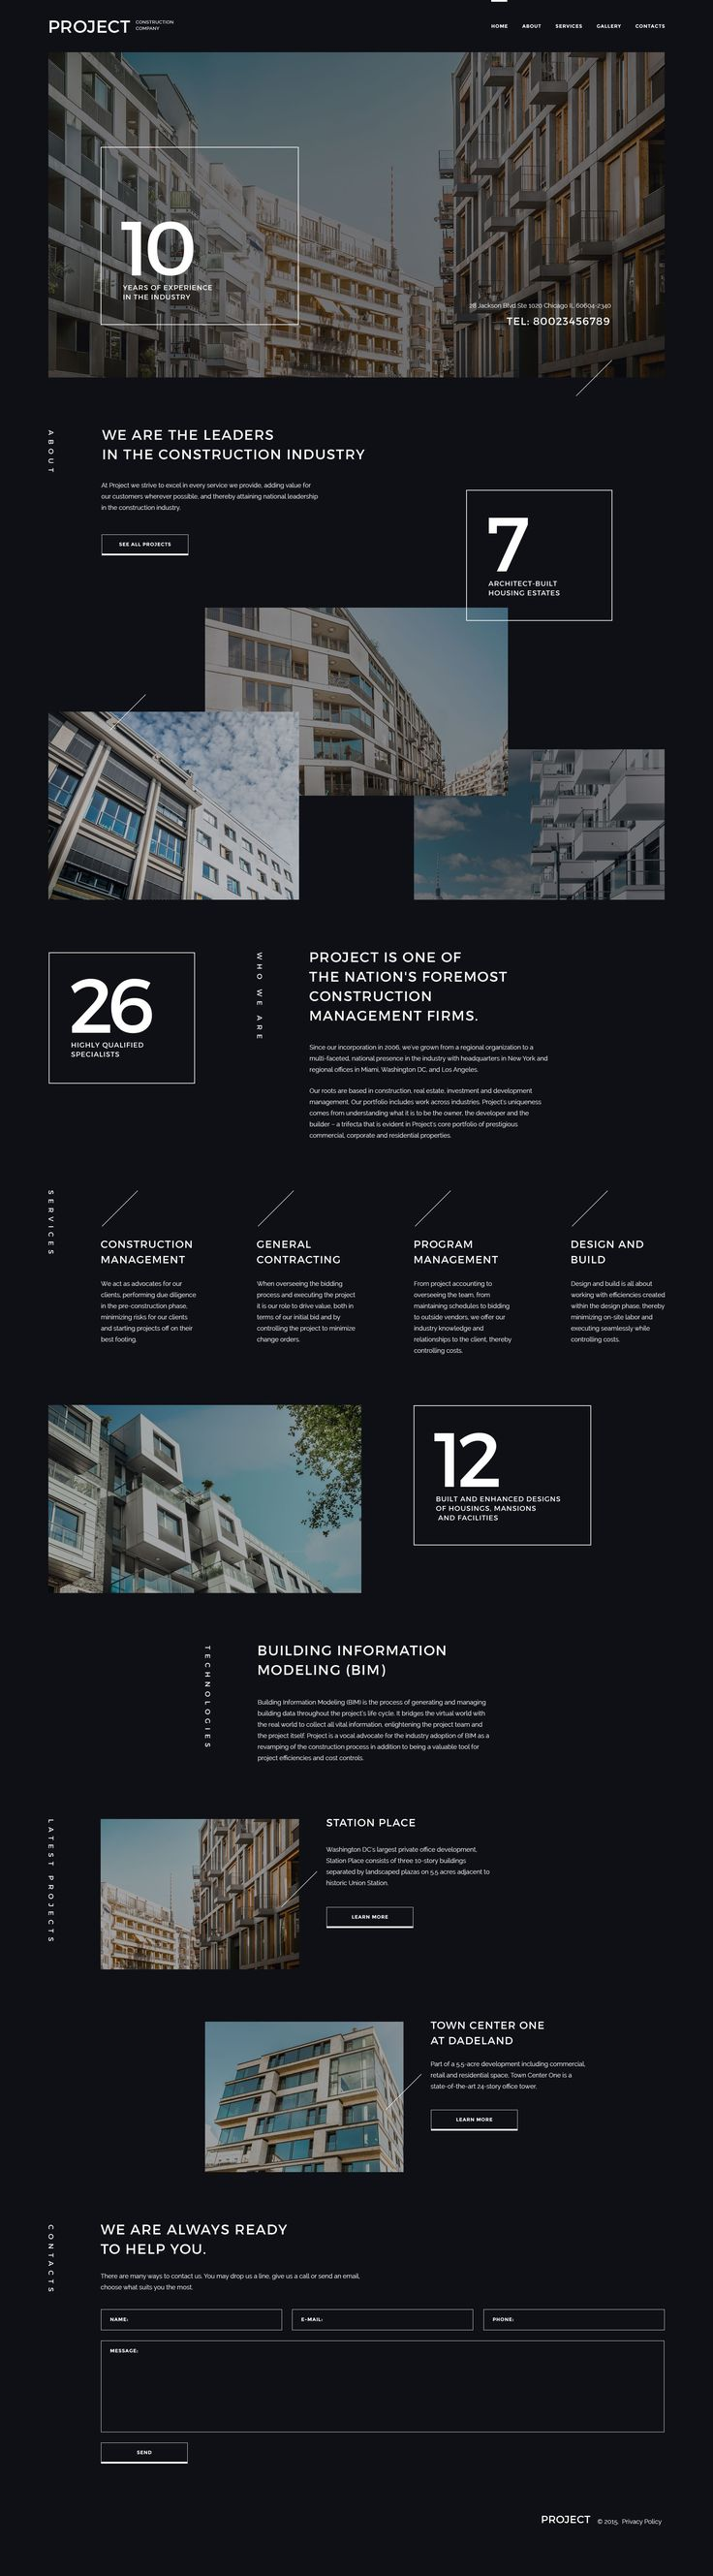 Construction Company Responsive Website Template #57947